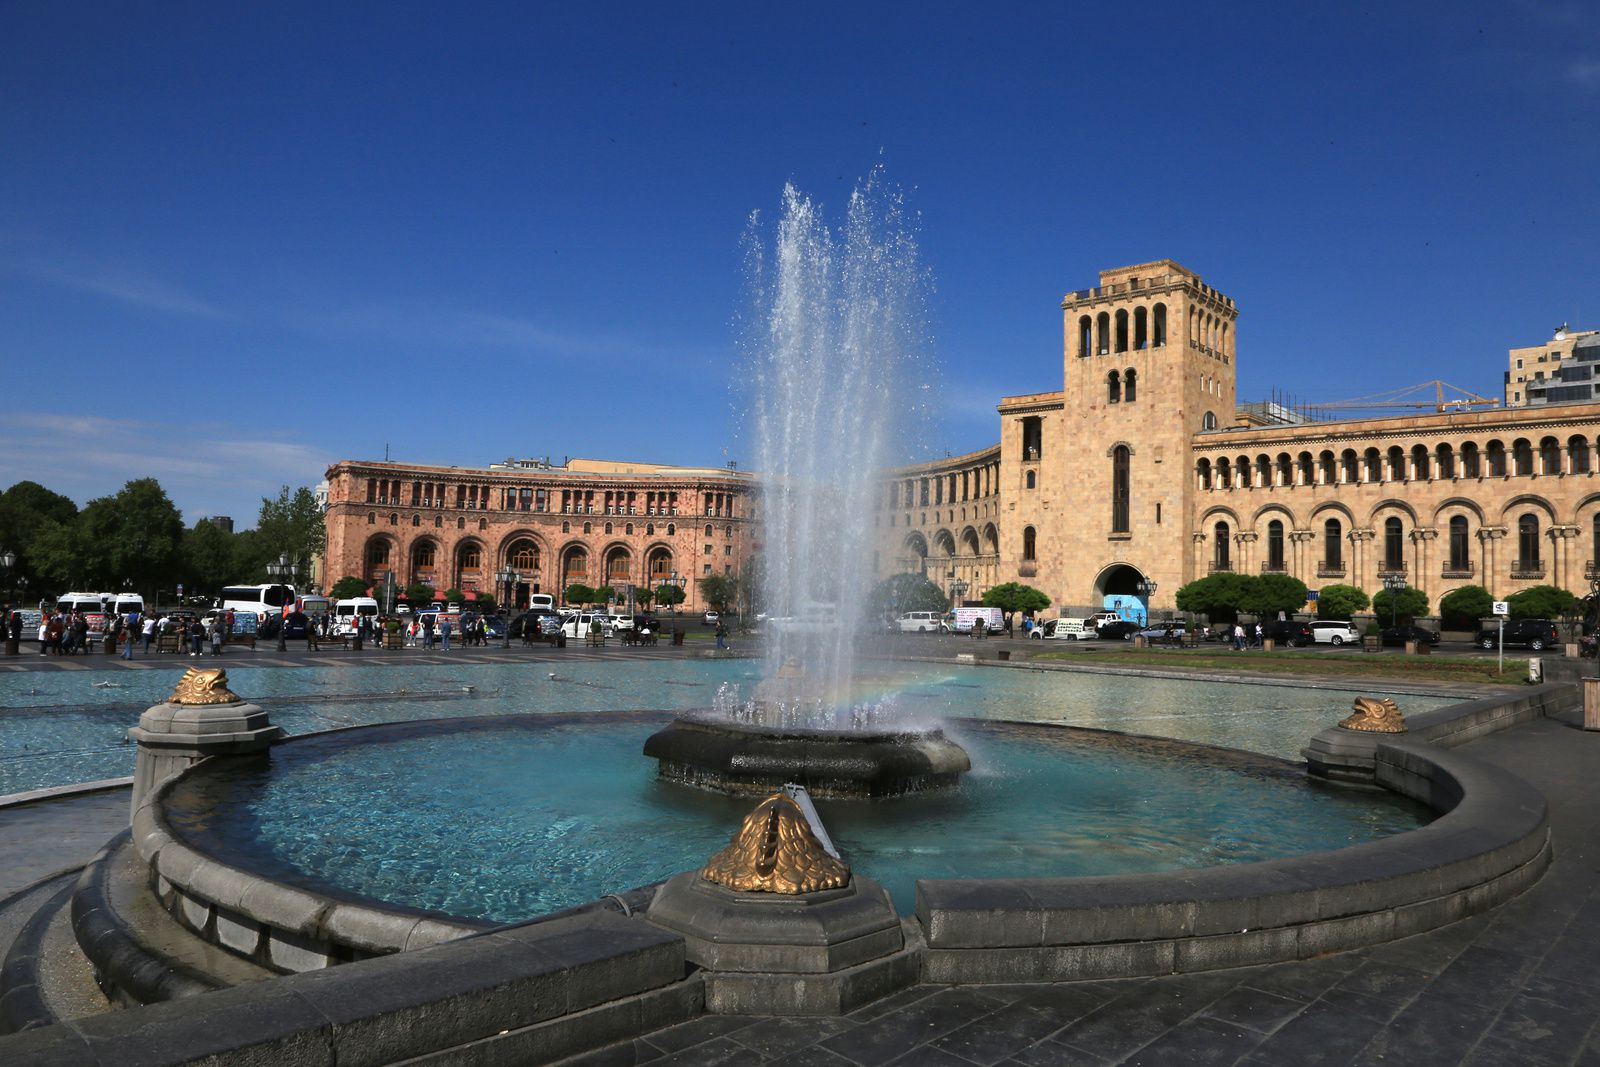 Yerevan - Republic Square, with the changing colors of the early morning - photo © Bernard Duyck 2019